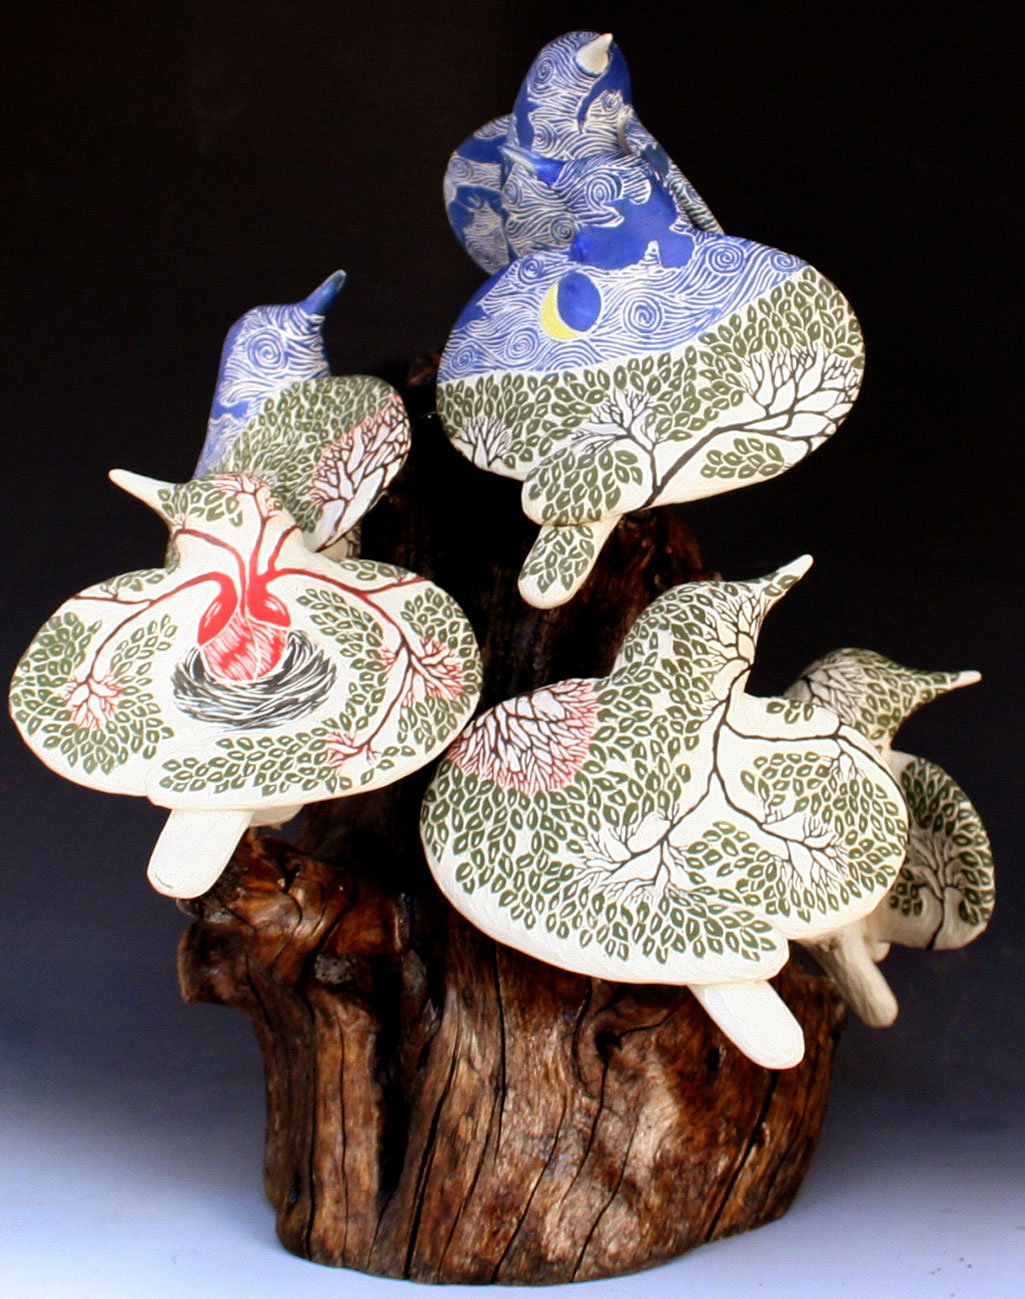 cathy weber - art - clay - woman - montana - ceramic - porcelain - bird - red wing - phases - forest - carved - moon - tree - hand - heart